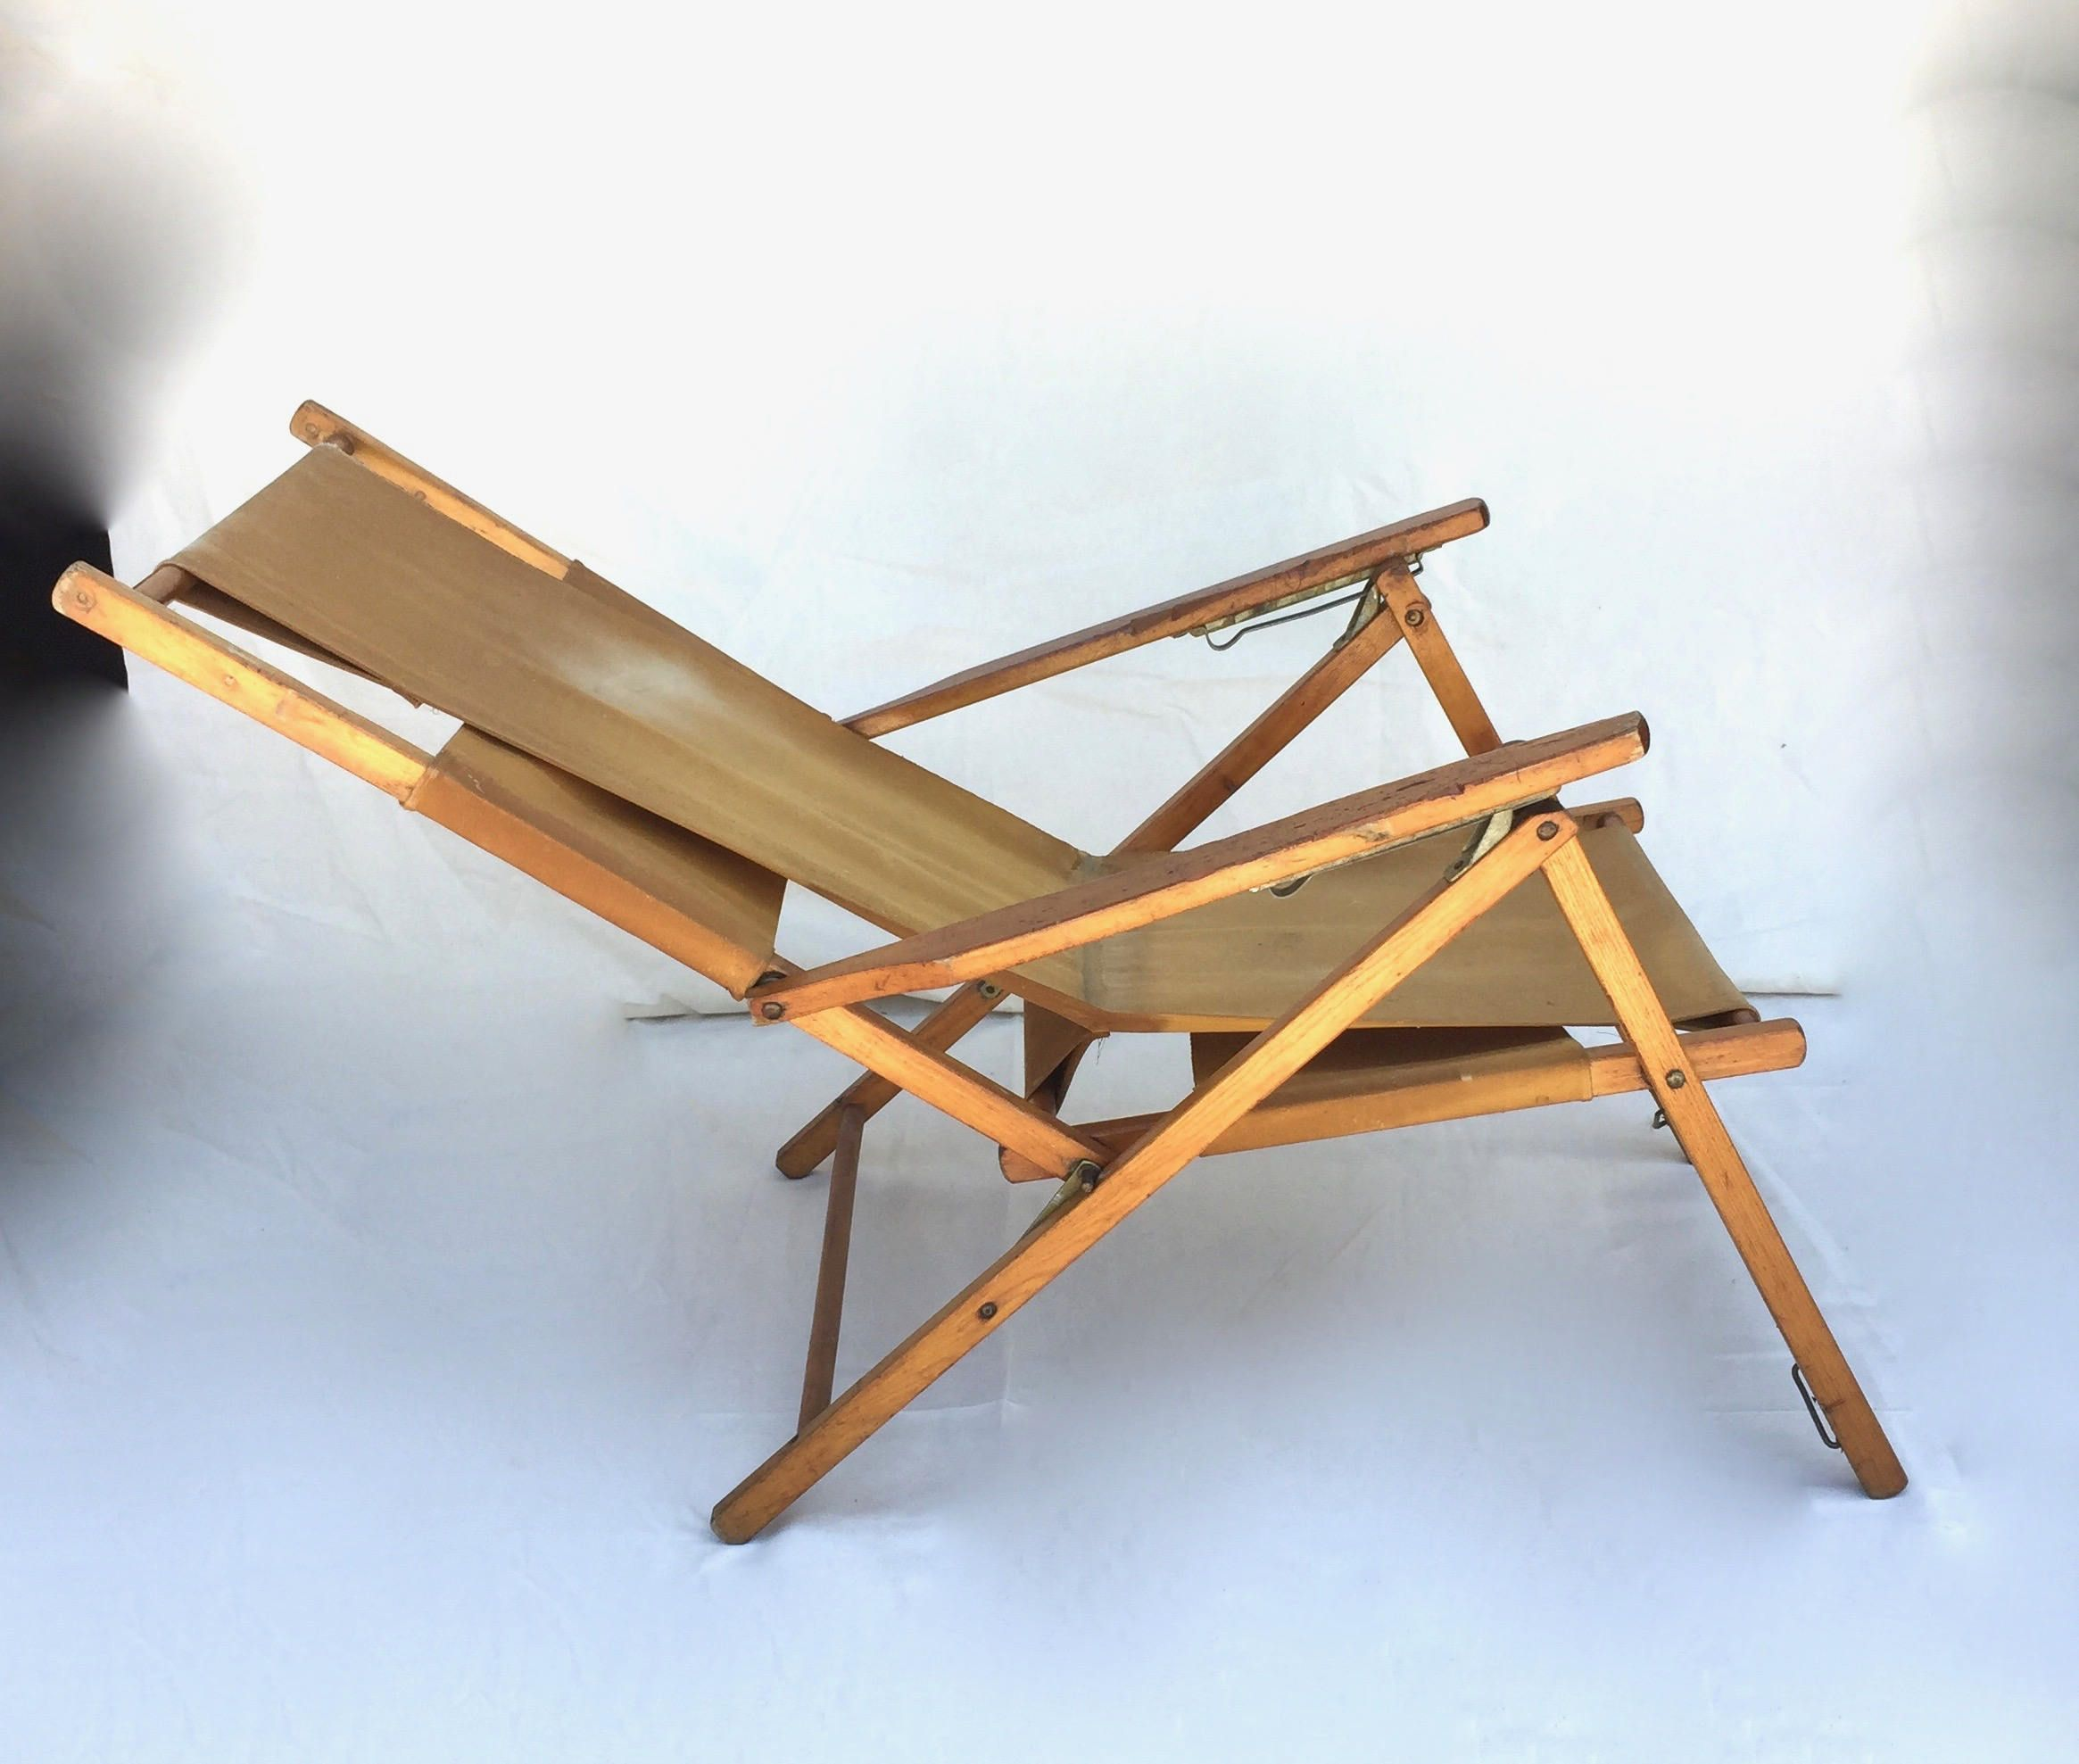 Vintage folding beach chairs - Vintage Beach Chair Folding Camp Chair C 1960 S By Gentryantiques On Etsy